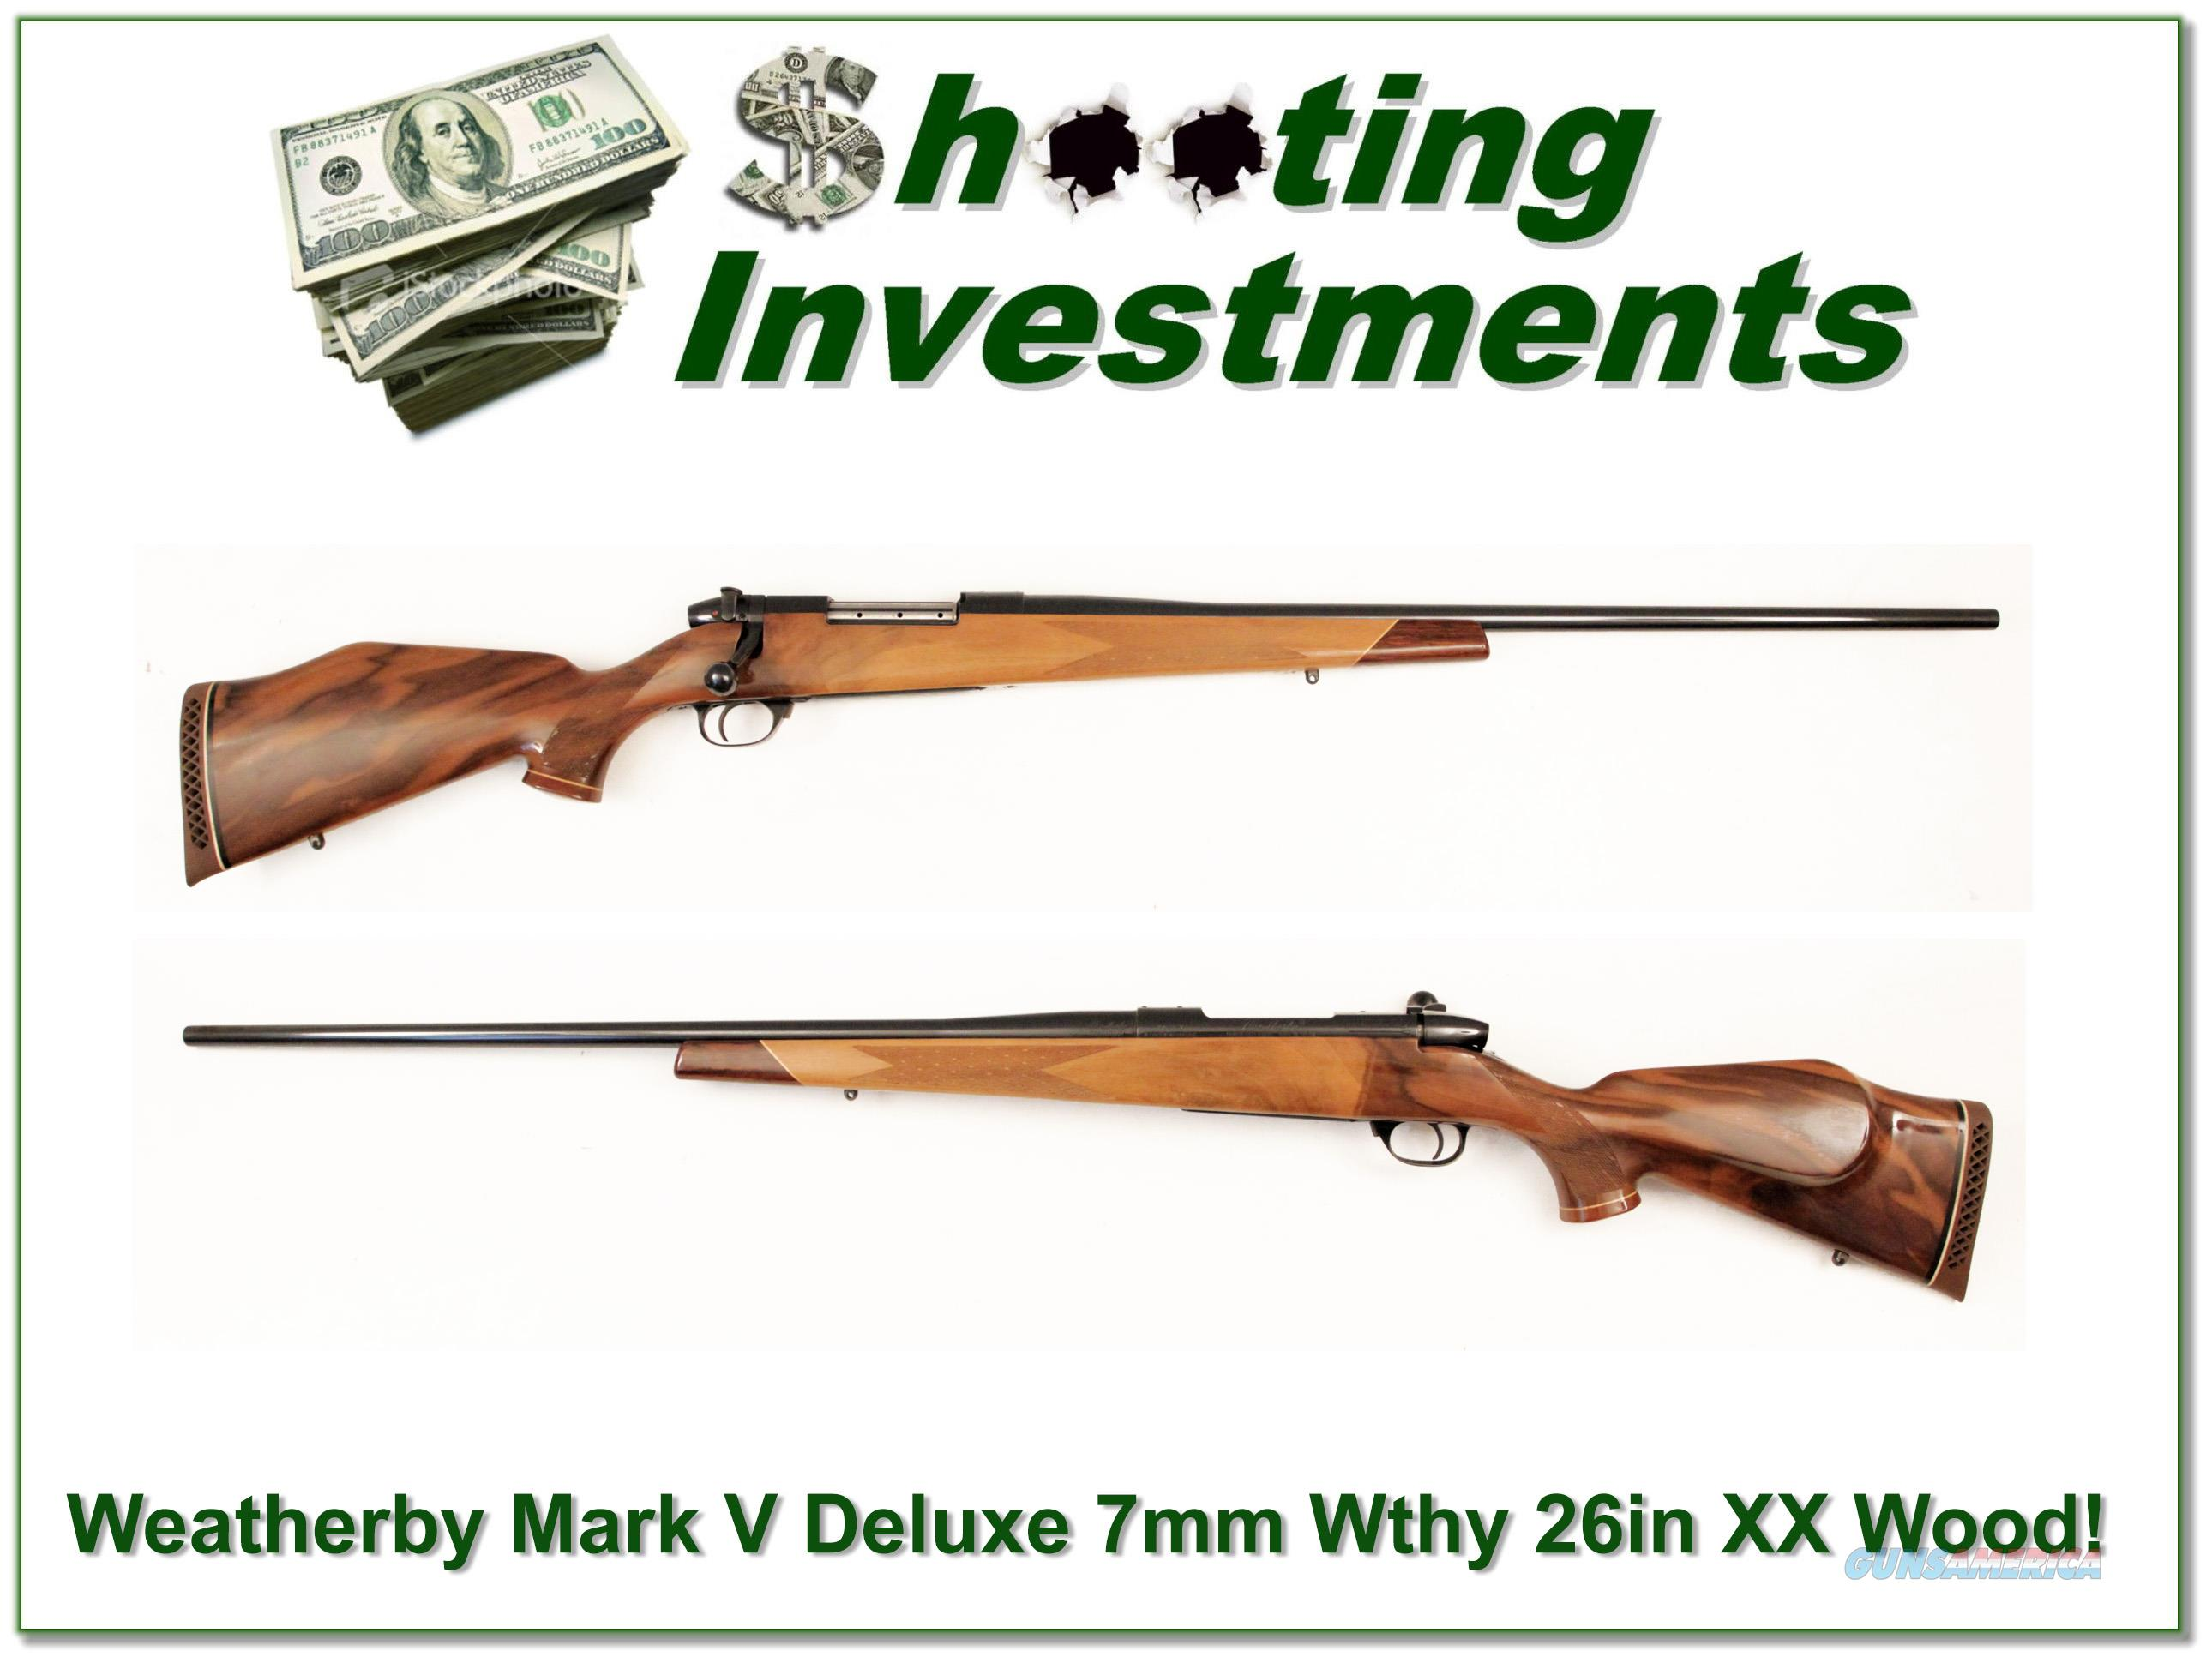 Weatherby Mark V Deluxe 7mm Wthy Mag 26in XX Wood!  Guns > Rifles > Weatherby Rifles > Sporting